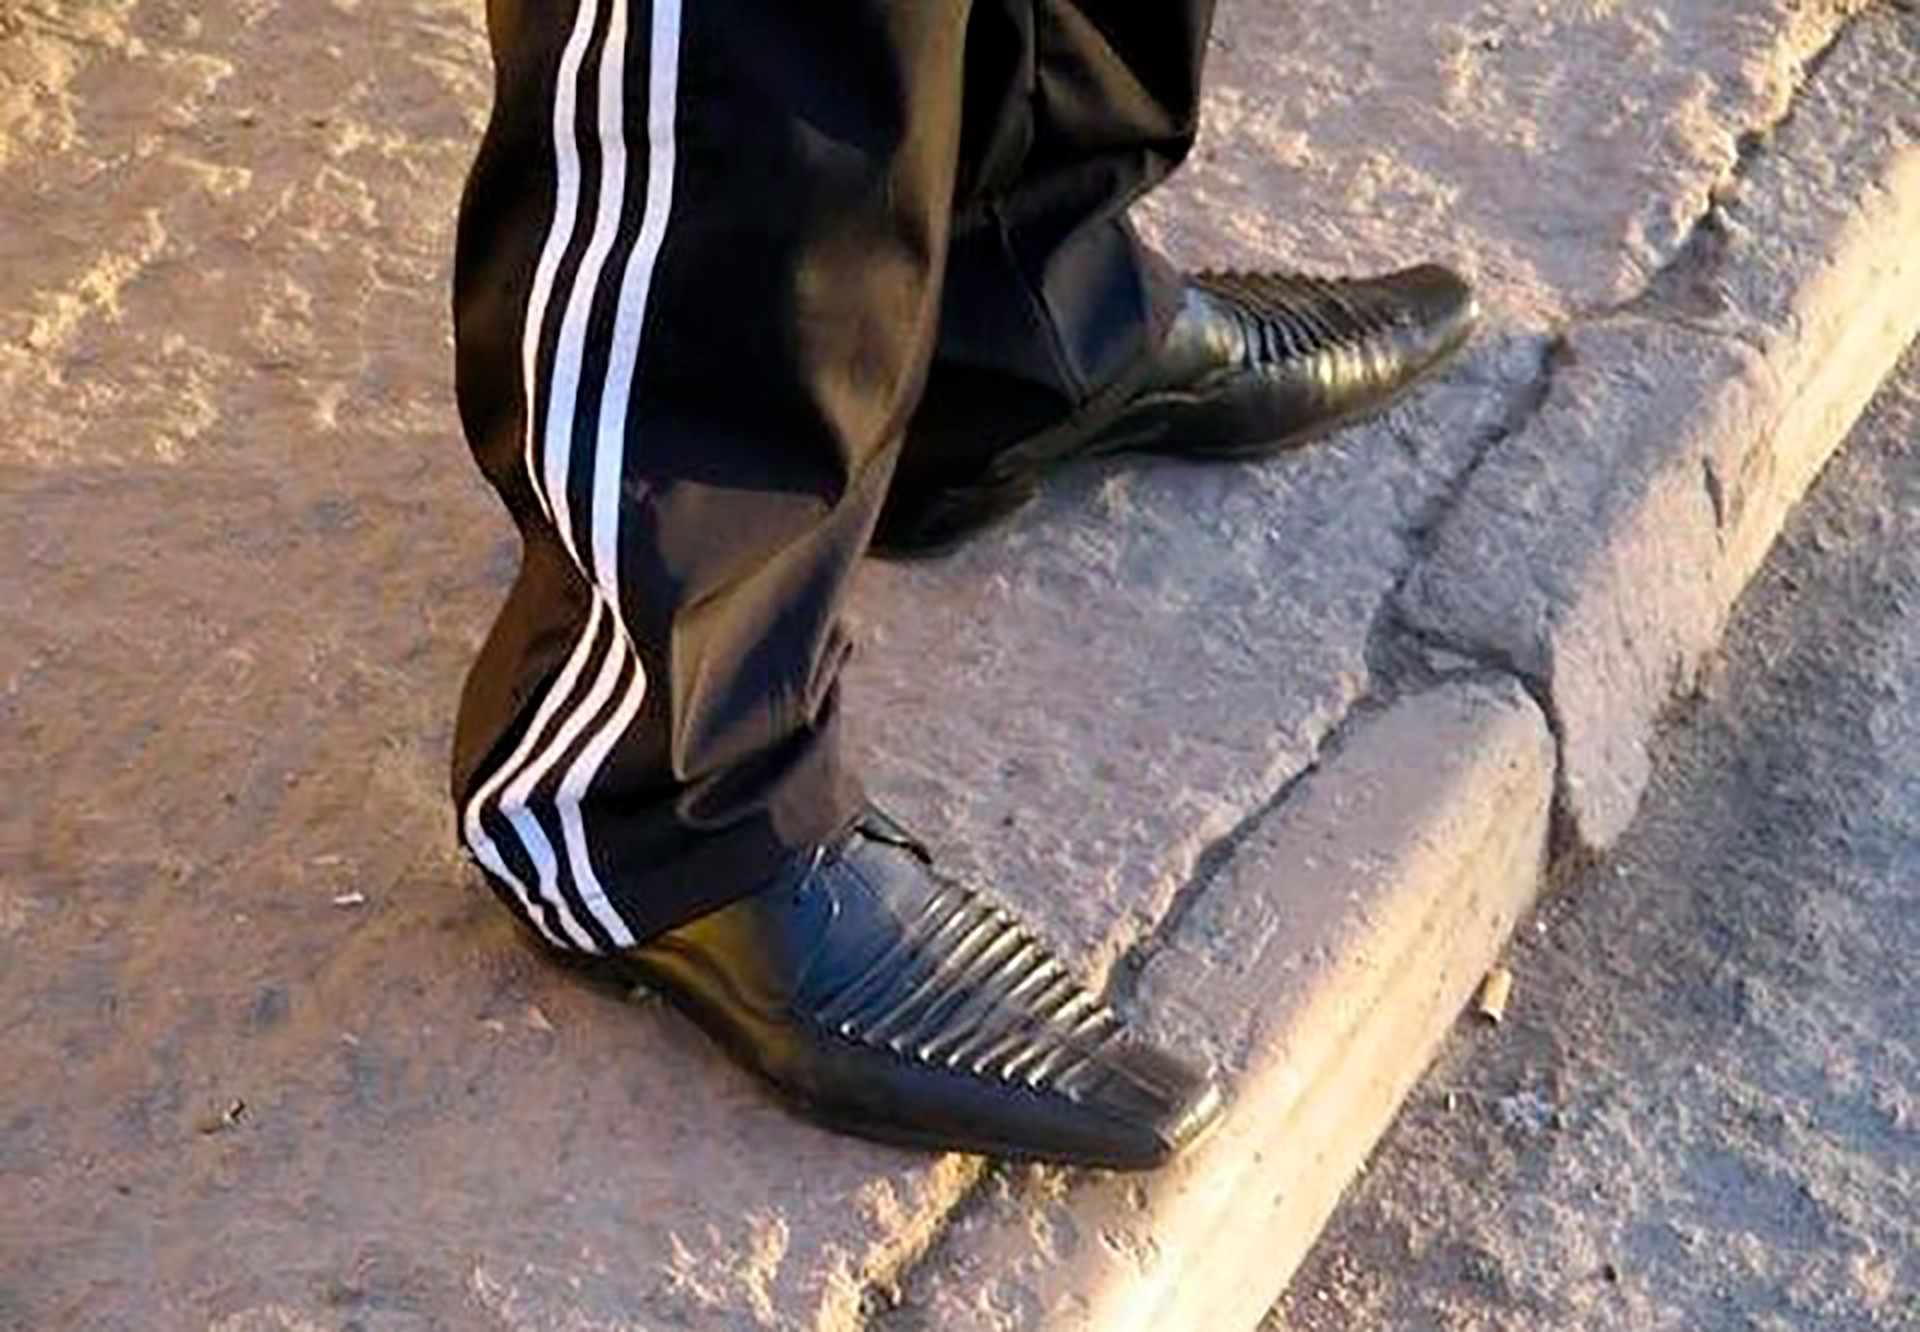 The combination of Adidas sweatpants and leather shoes is especially classy (especially if you're a gopnik and have no sense of style at all)